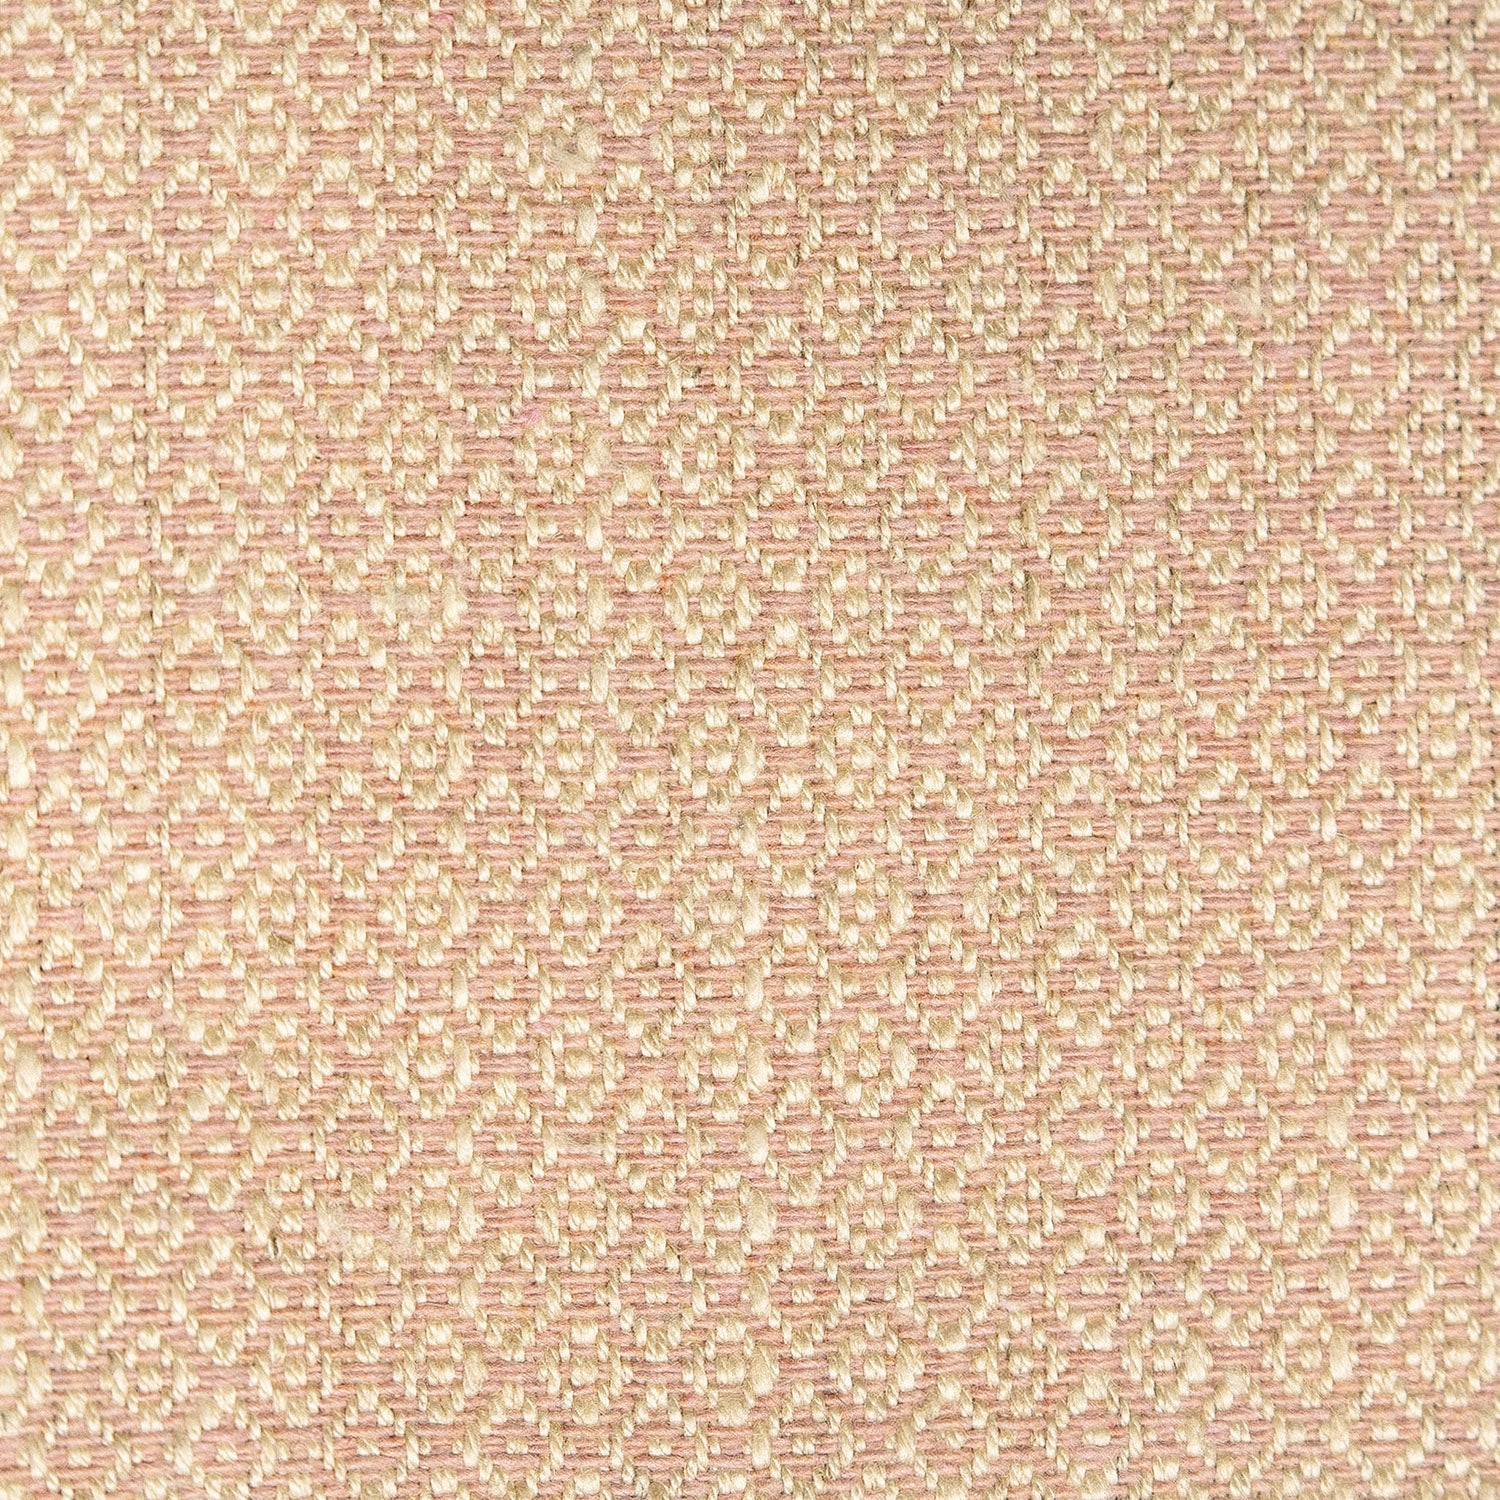 Fabric sample of a blush pink and neutral weave fabric with a small diamond design and stain resistant finish for curtains and upholstery